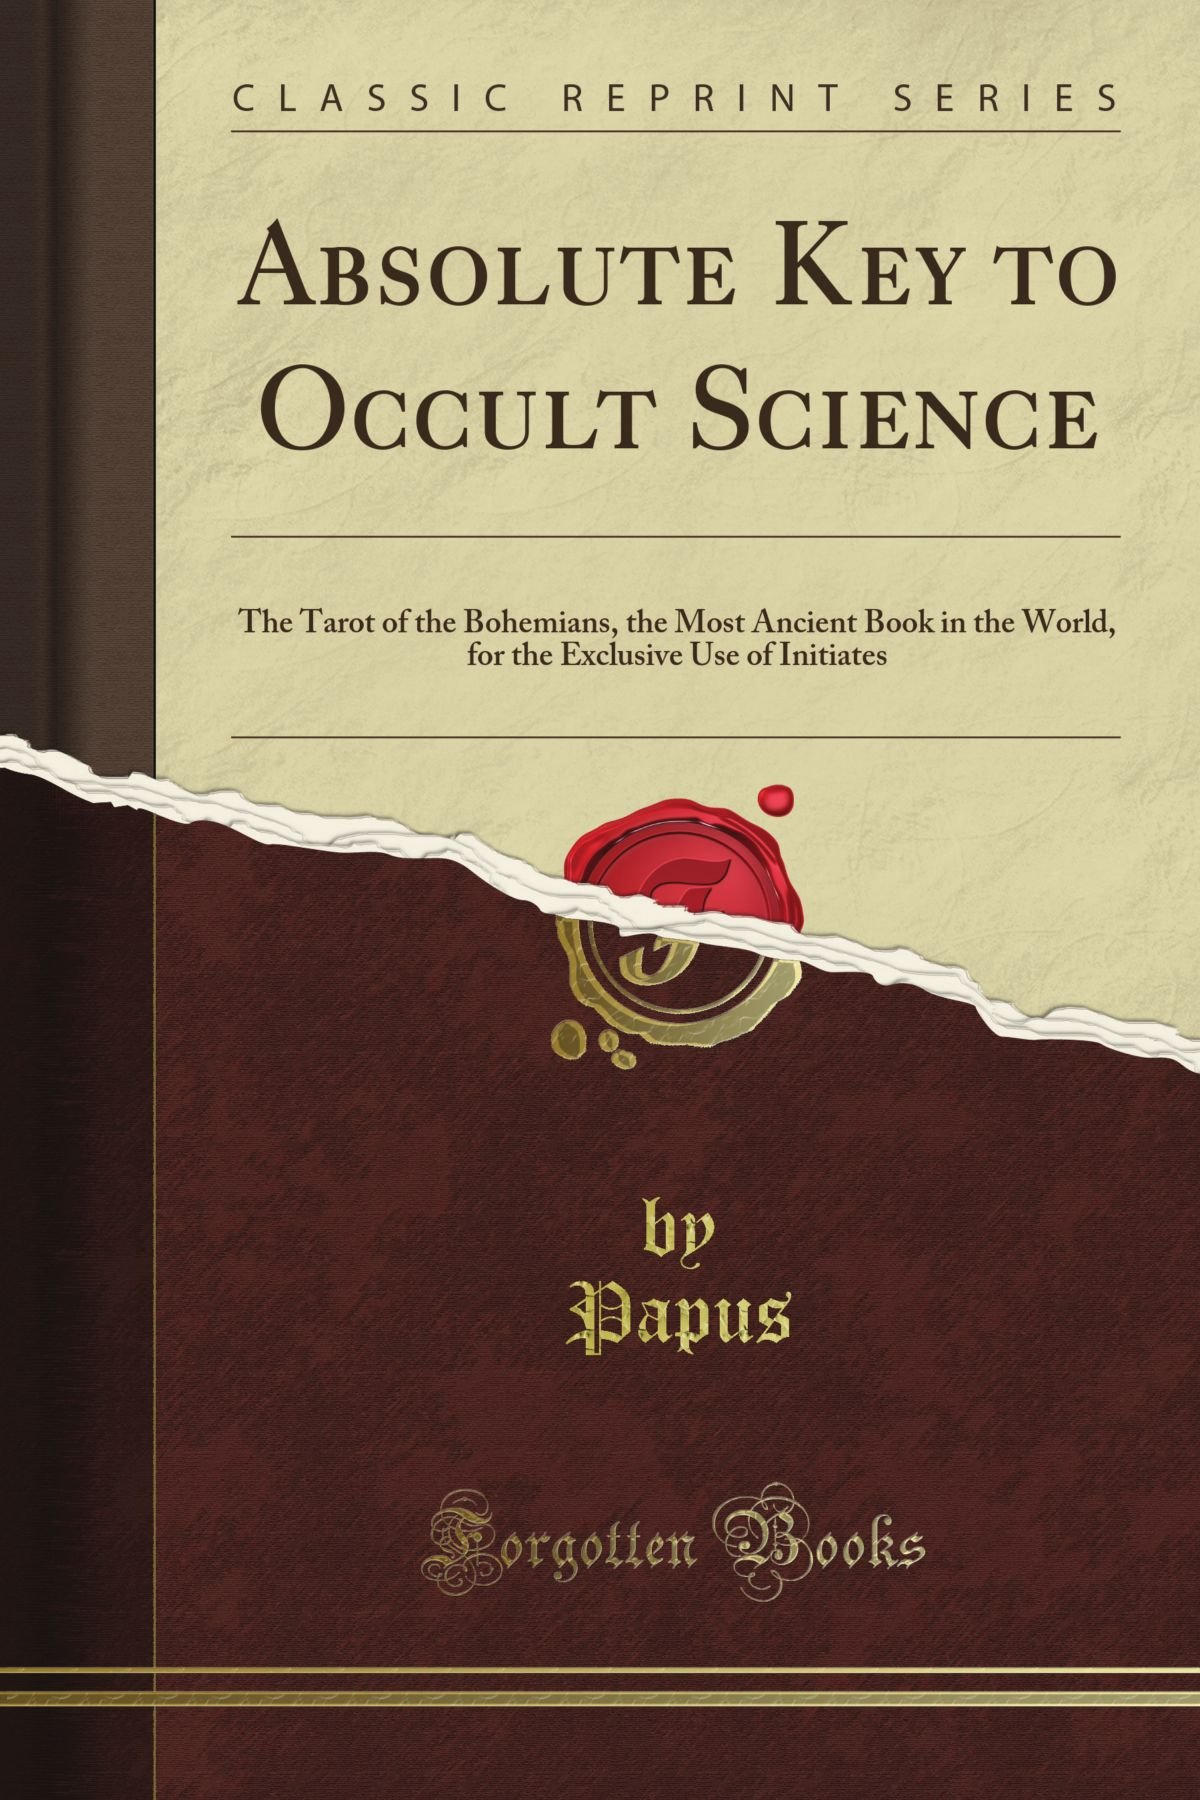 Read Online Absolute Key to Occult Science: The Tarot of the Bohemians, the Most Ancient Book in the World, for the Exclusive Use of Initiates (Classic Reprint) pdf epub